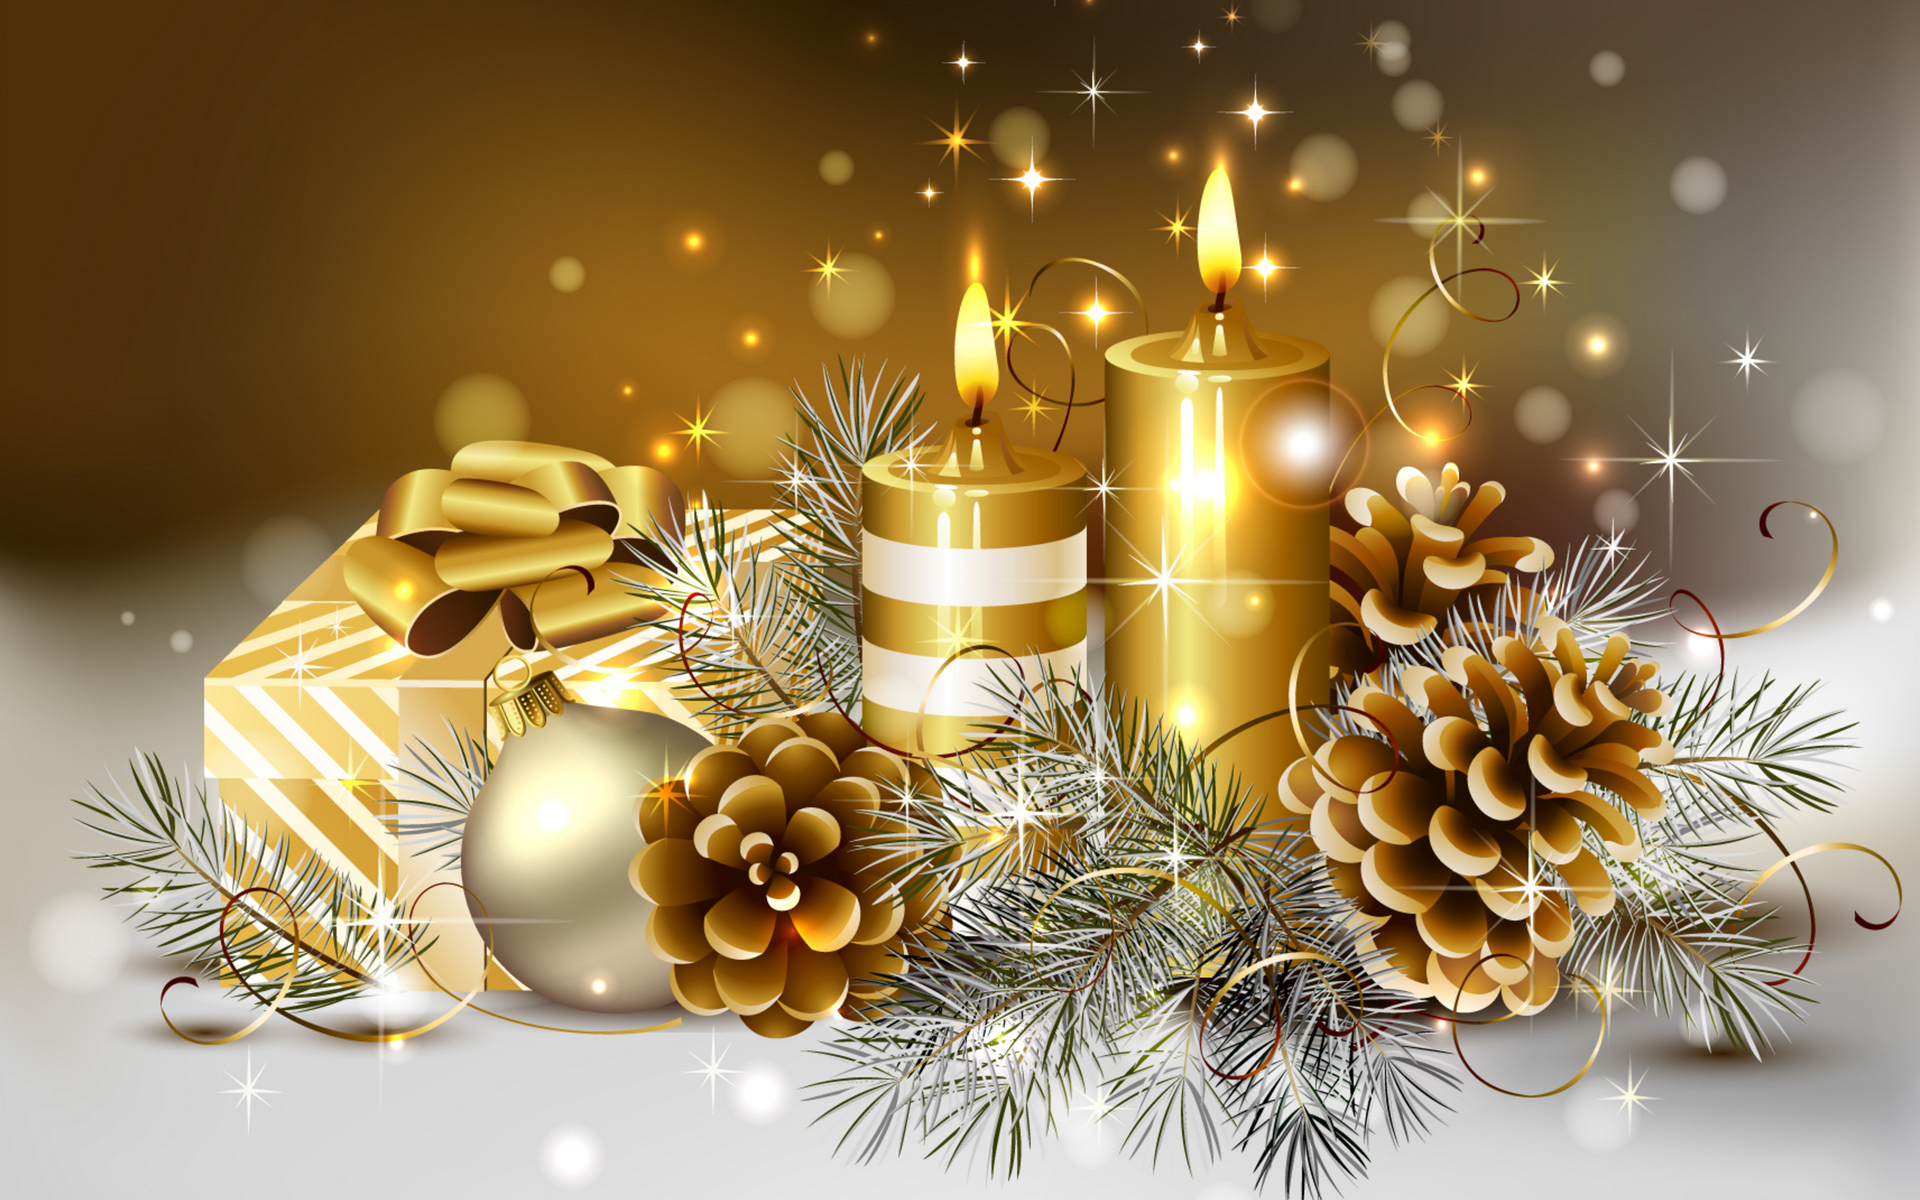 You can make merry christmas wallpaper hd awesome For your Desktop Background, Tablet, Android or iPhone and ...